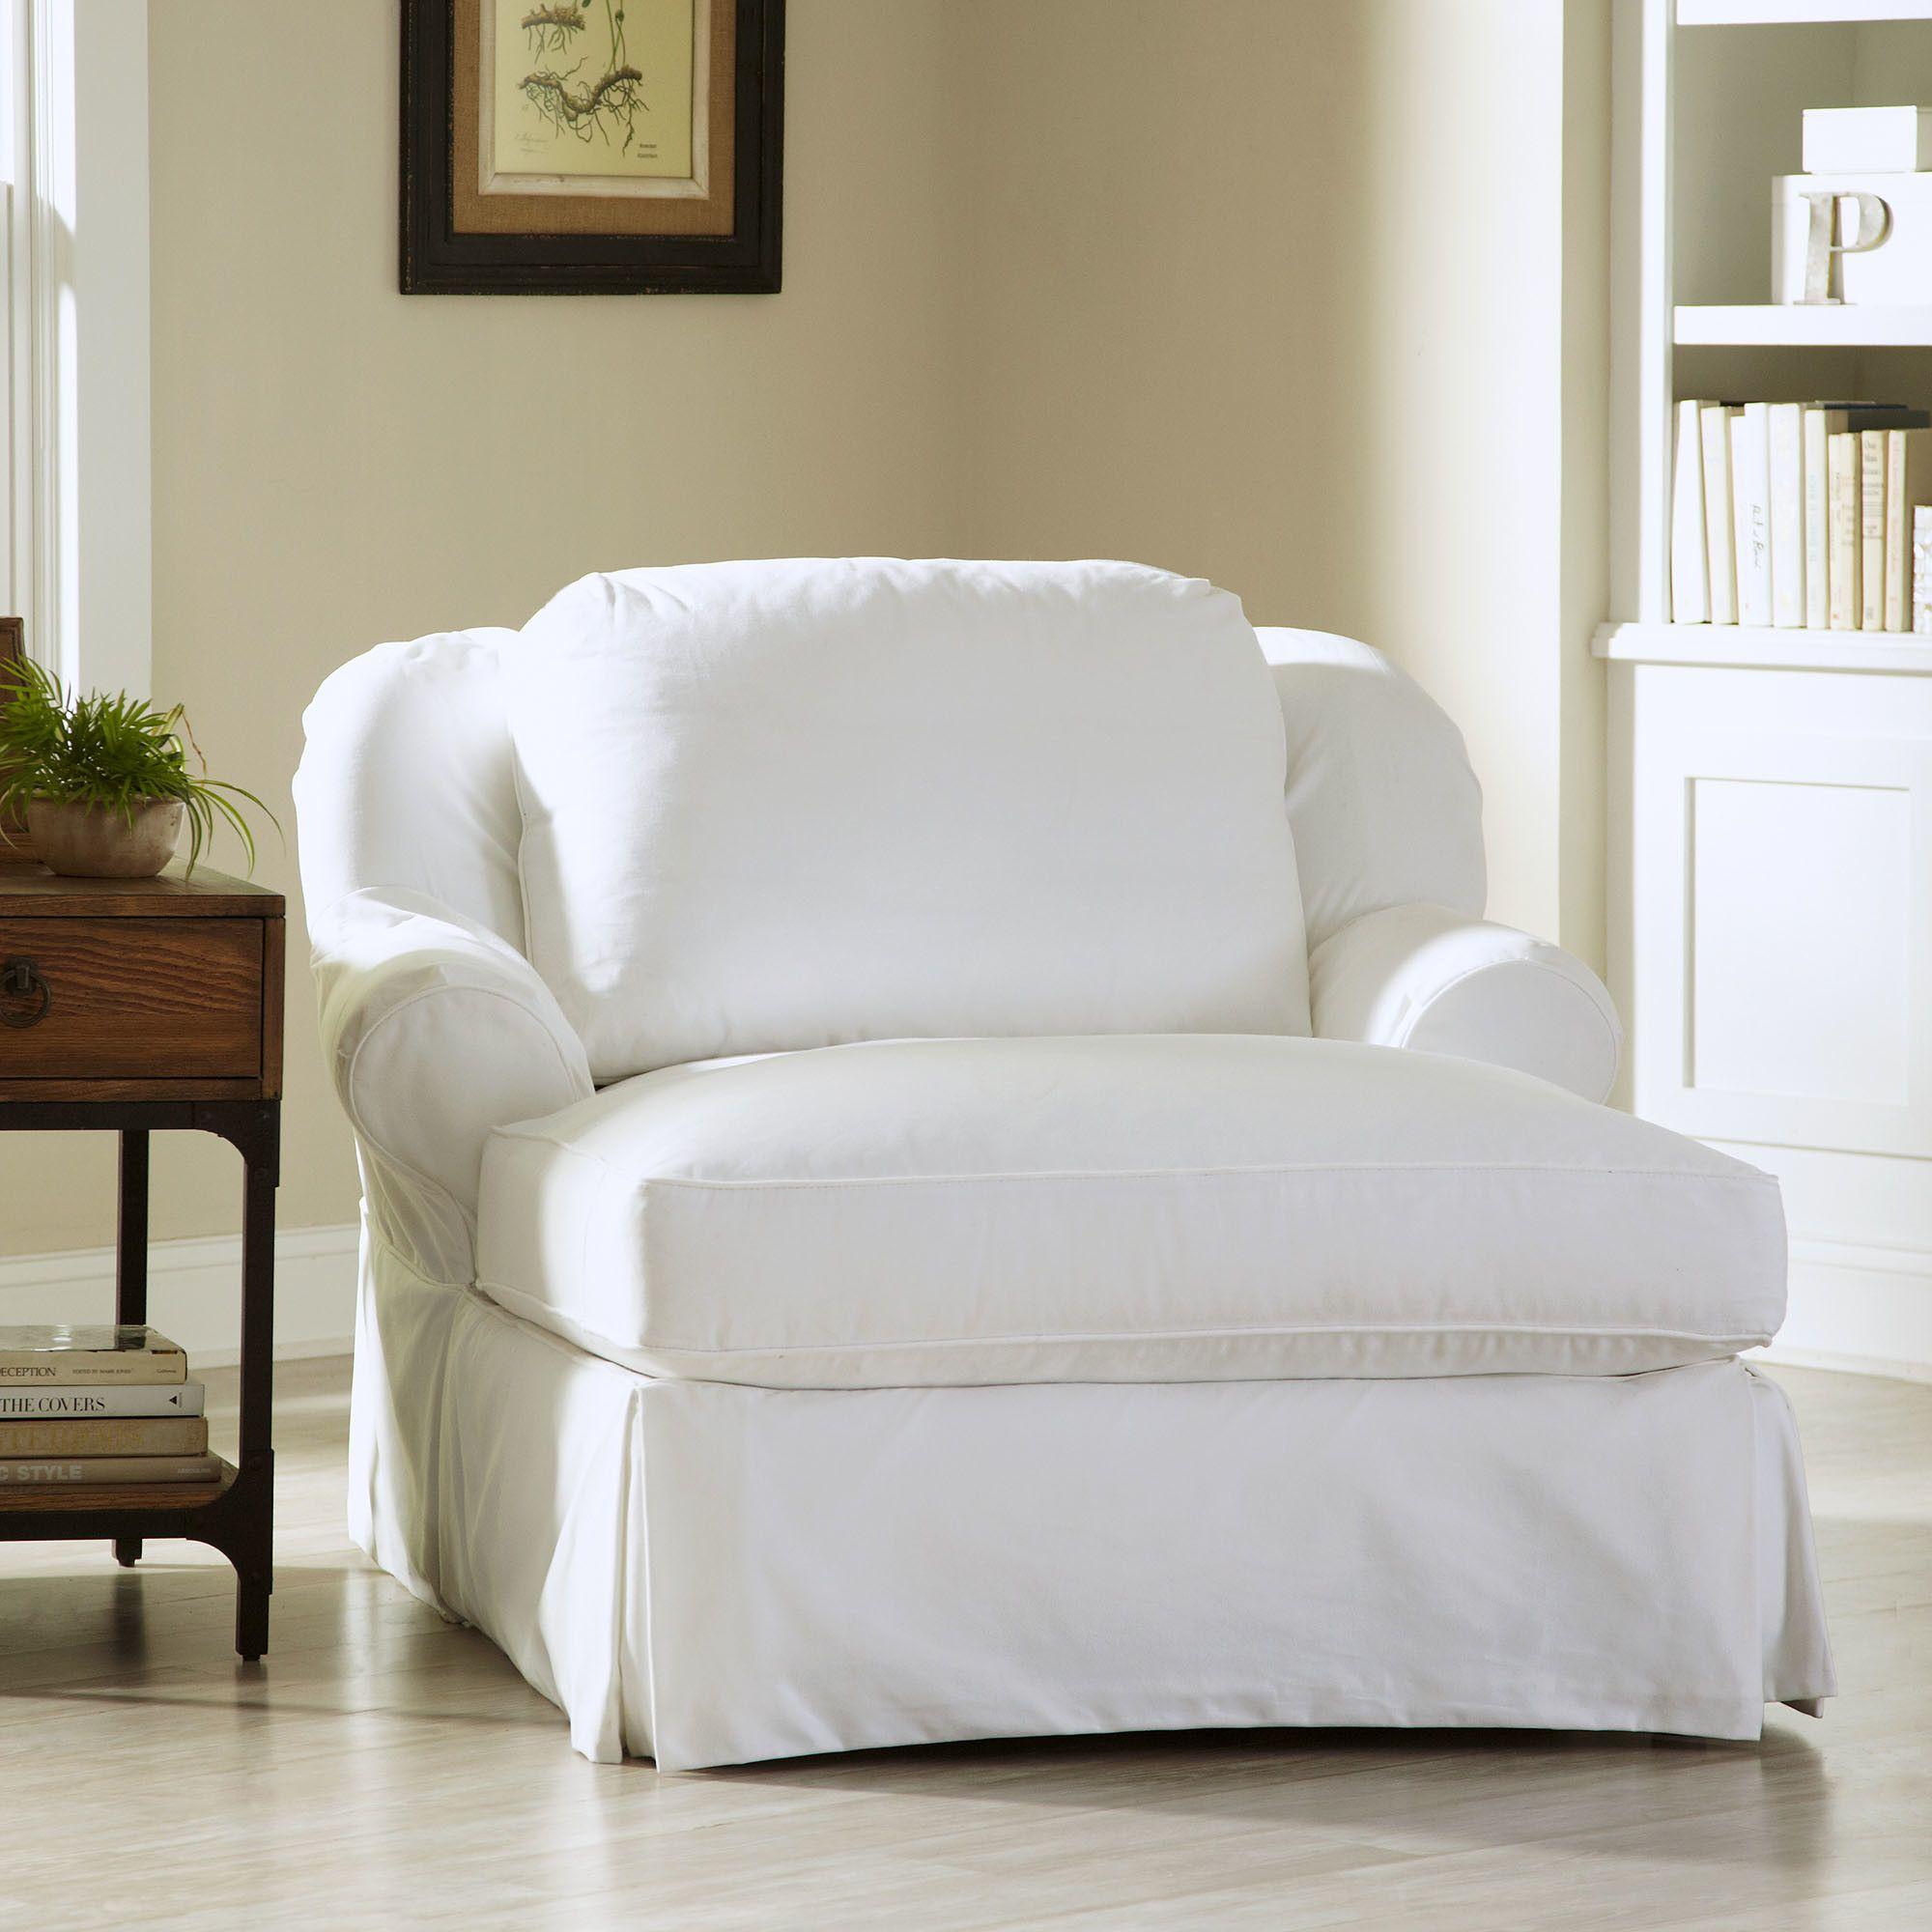 Pin On White Living Room Inspiration Living room chaise lounge covers